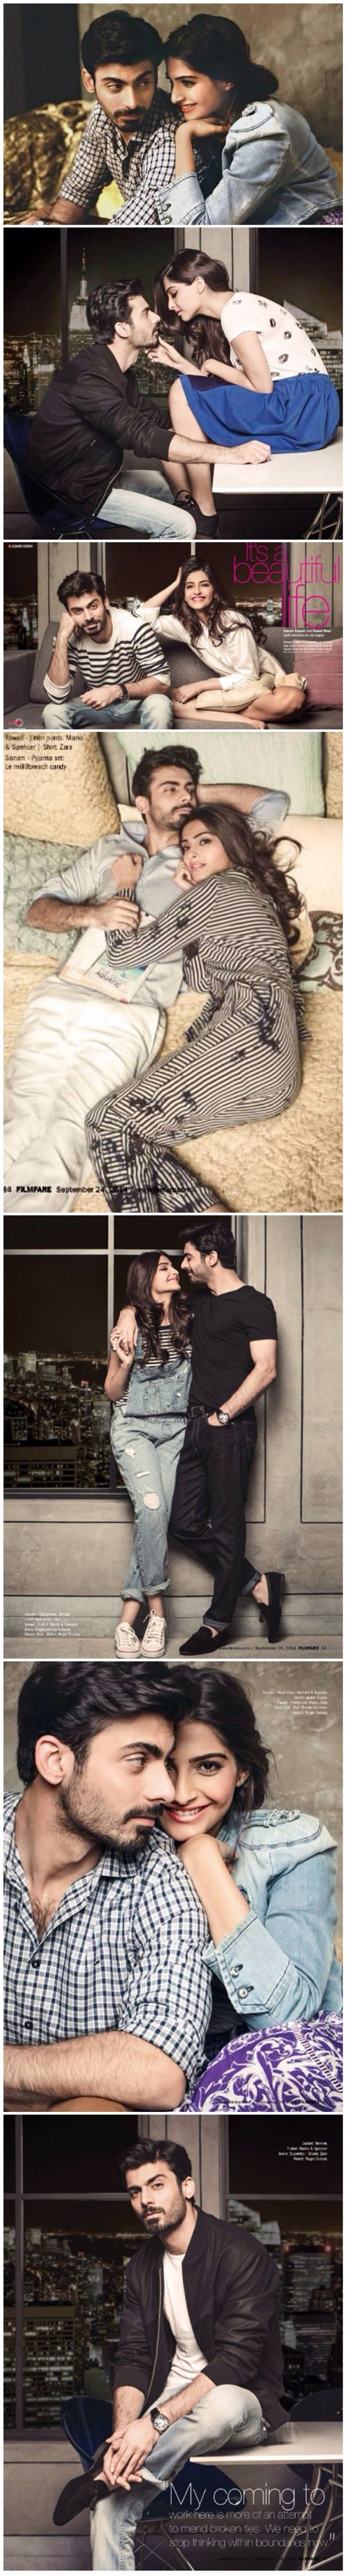 They can absolutely be a real life couple. I think the world will appreciate that. Sonam Kapoor, Fawad Khan get lovey-dovey on Filmfare.